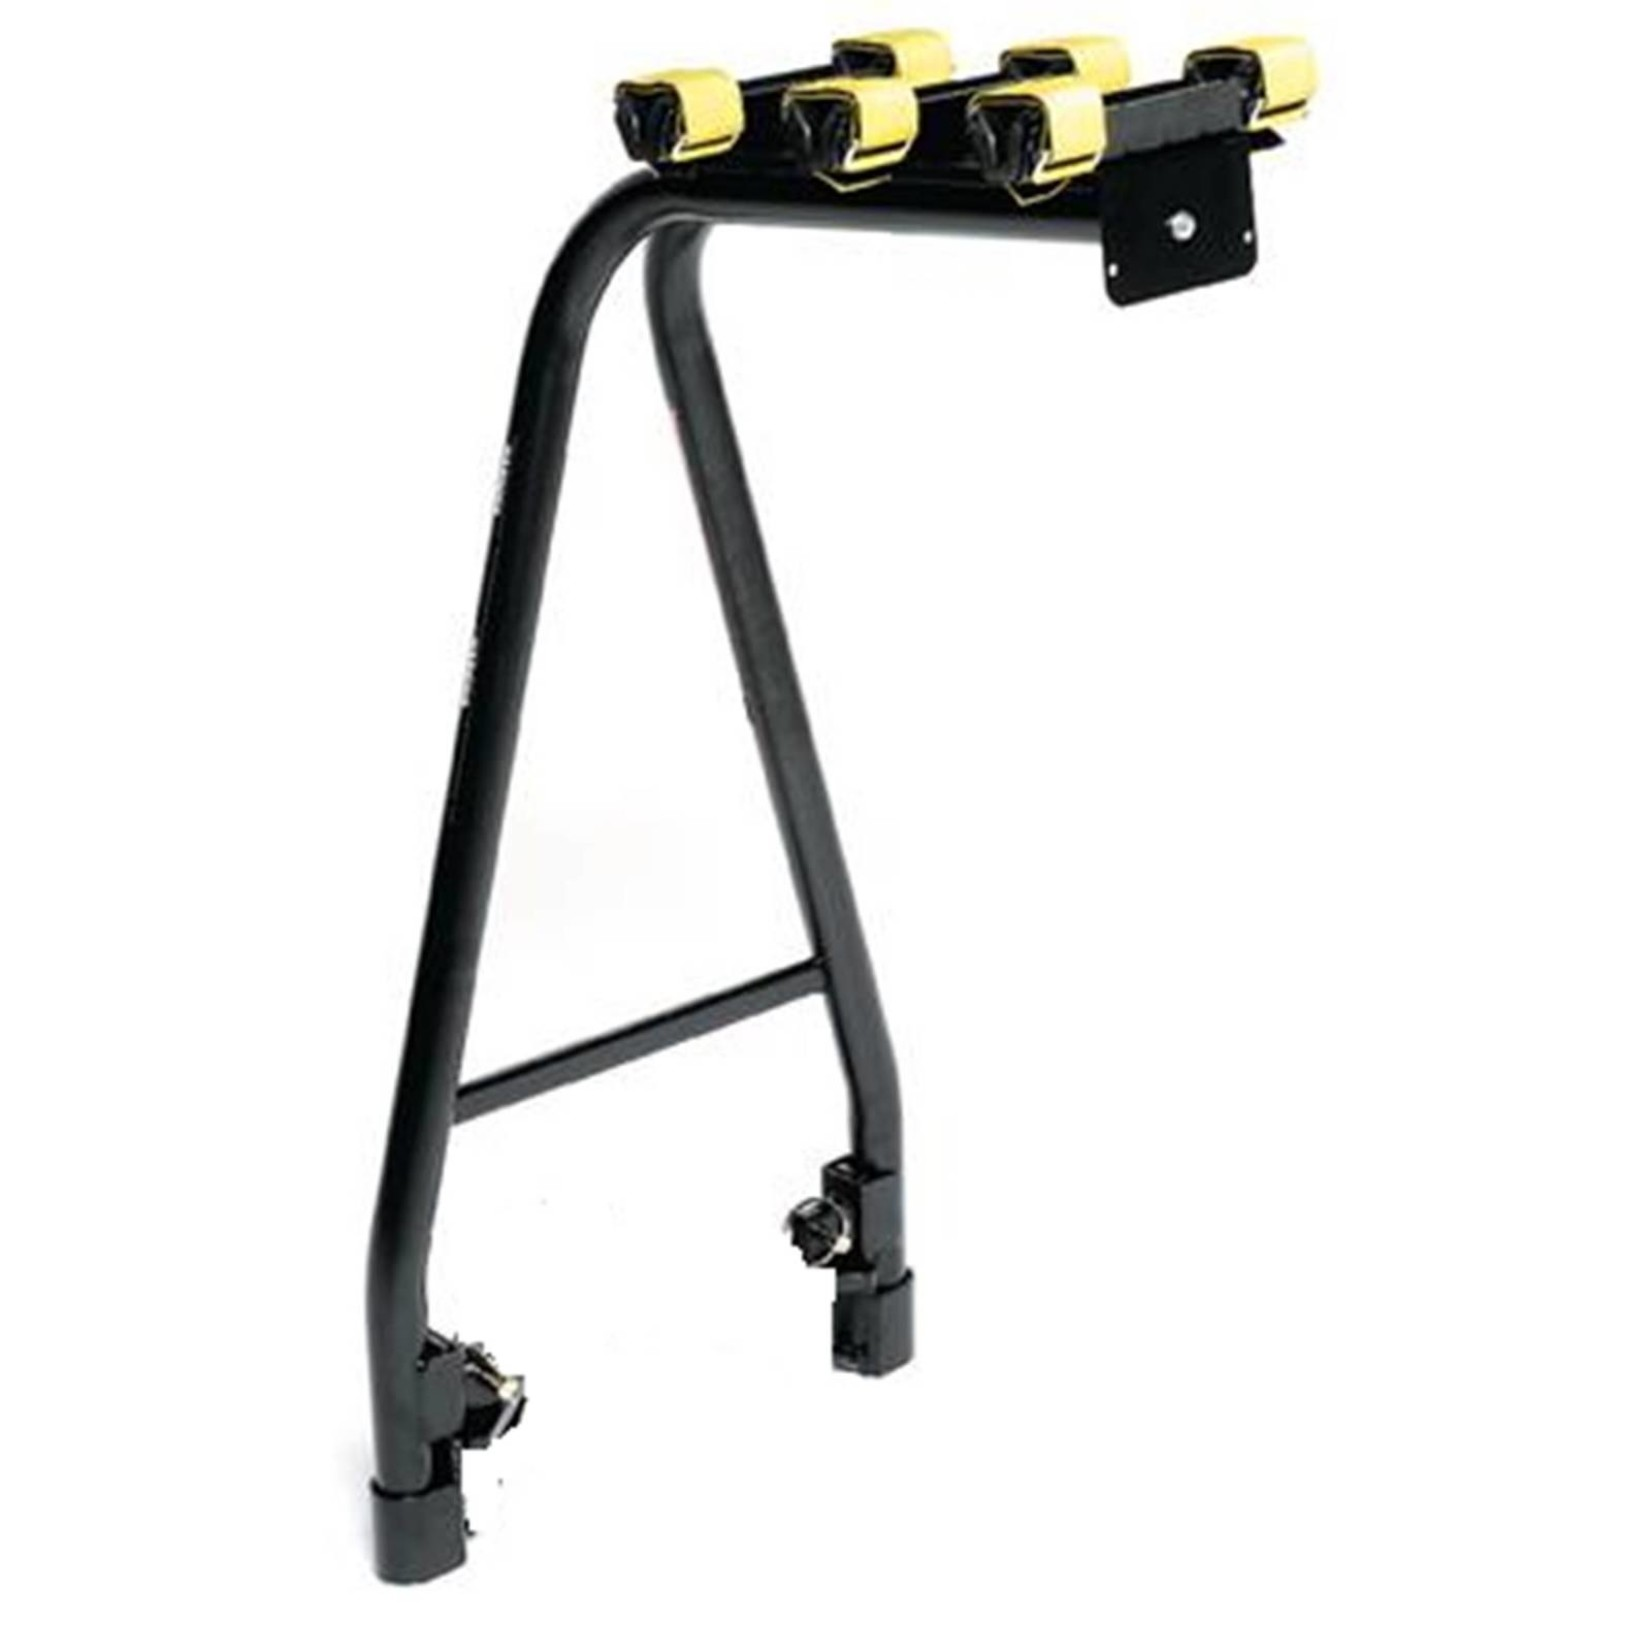 Pacific A/Frame 3 Bike Carrier, rack only